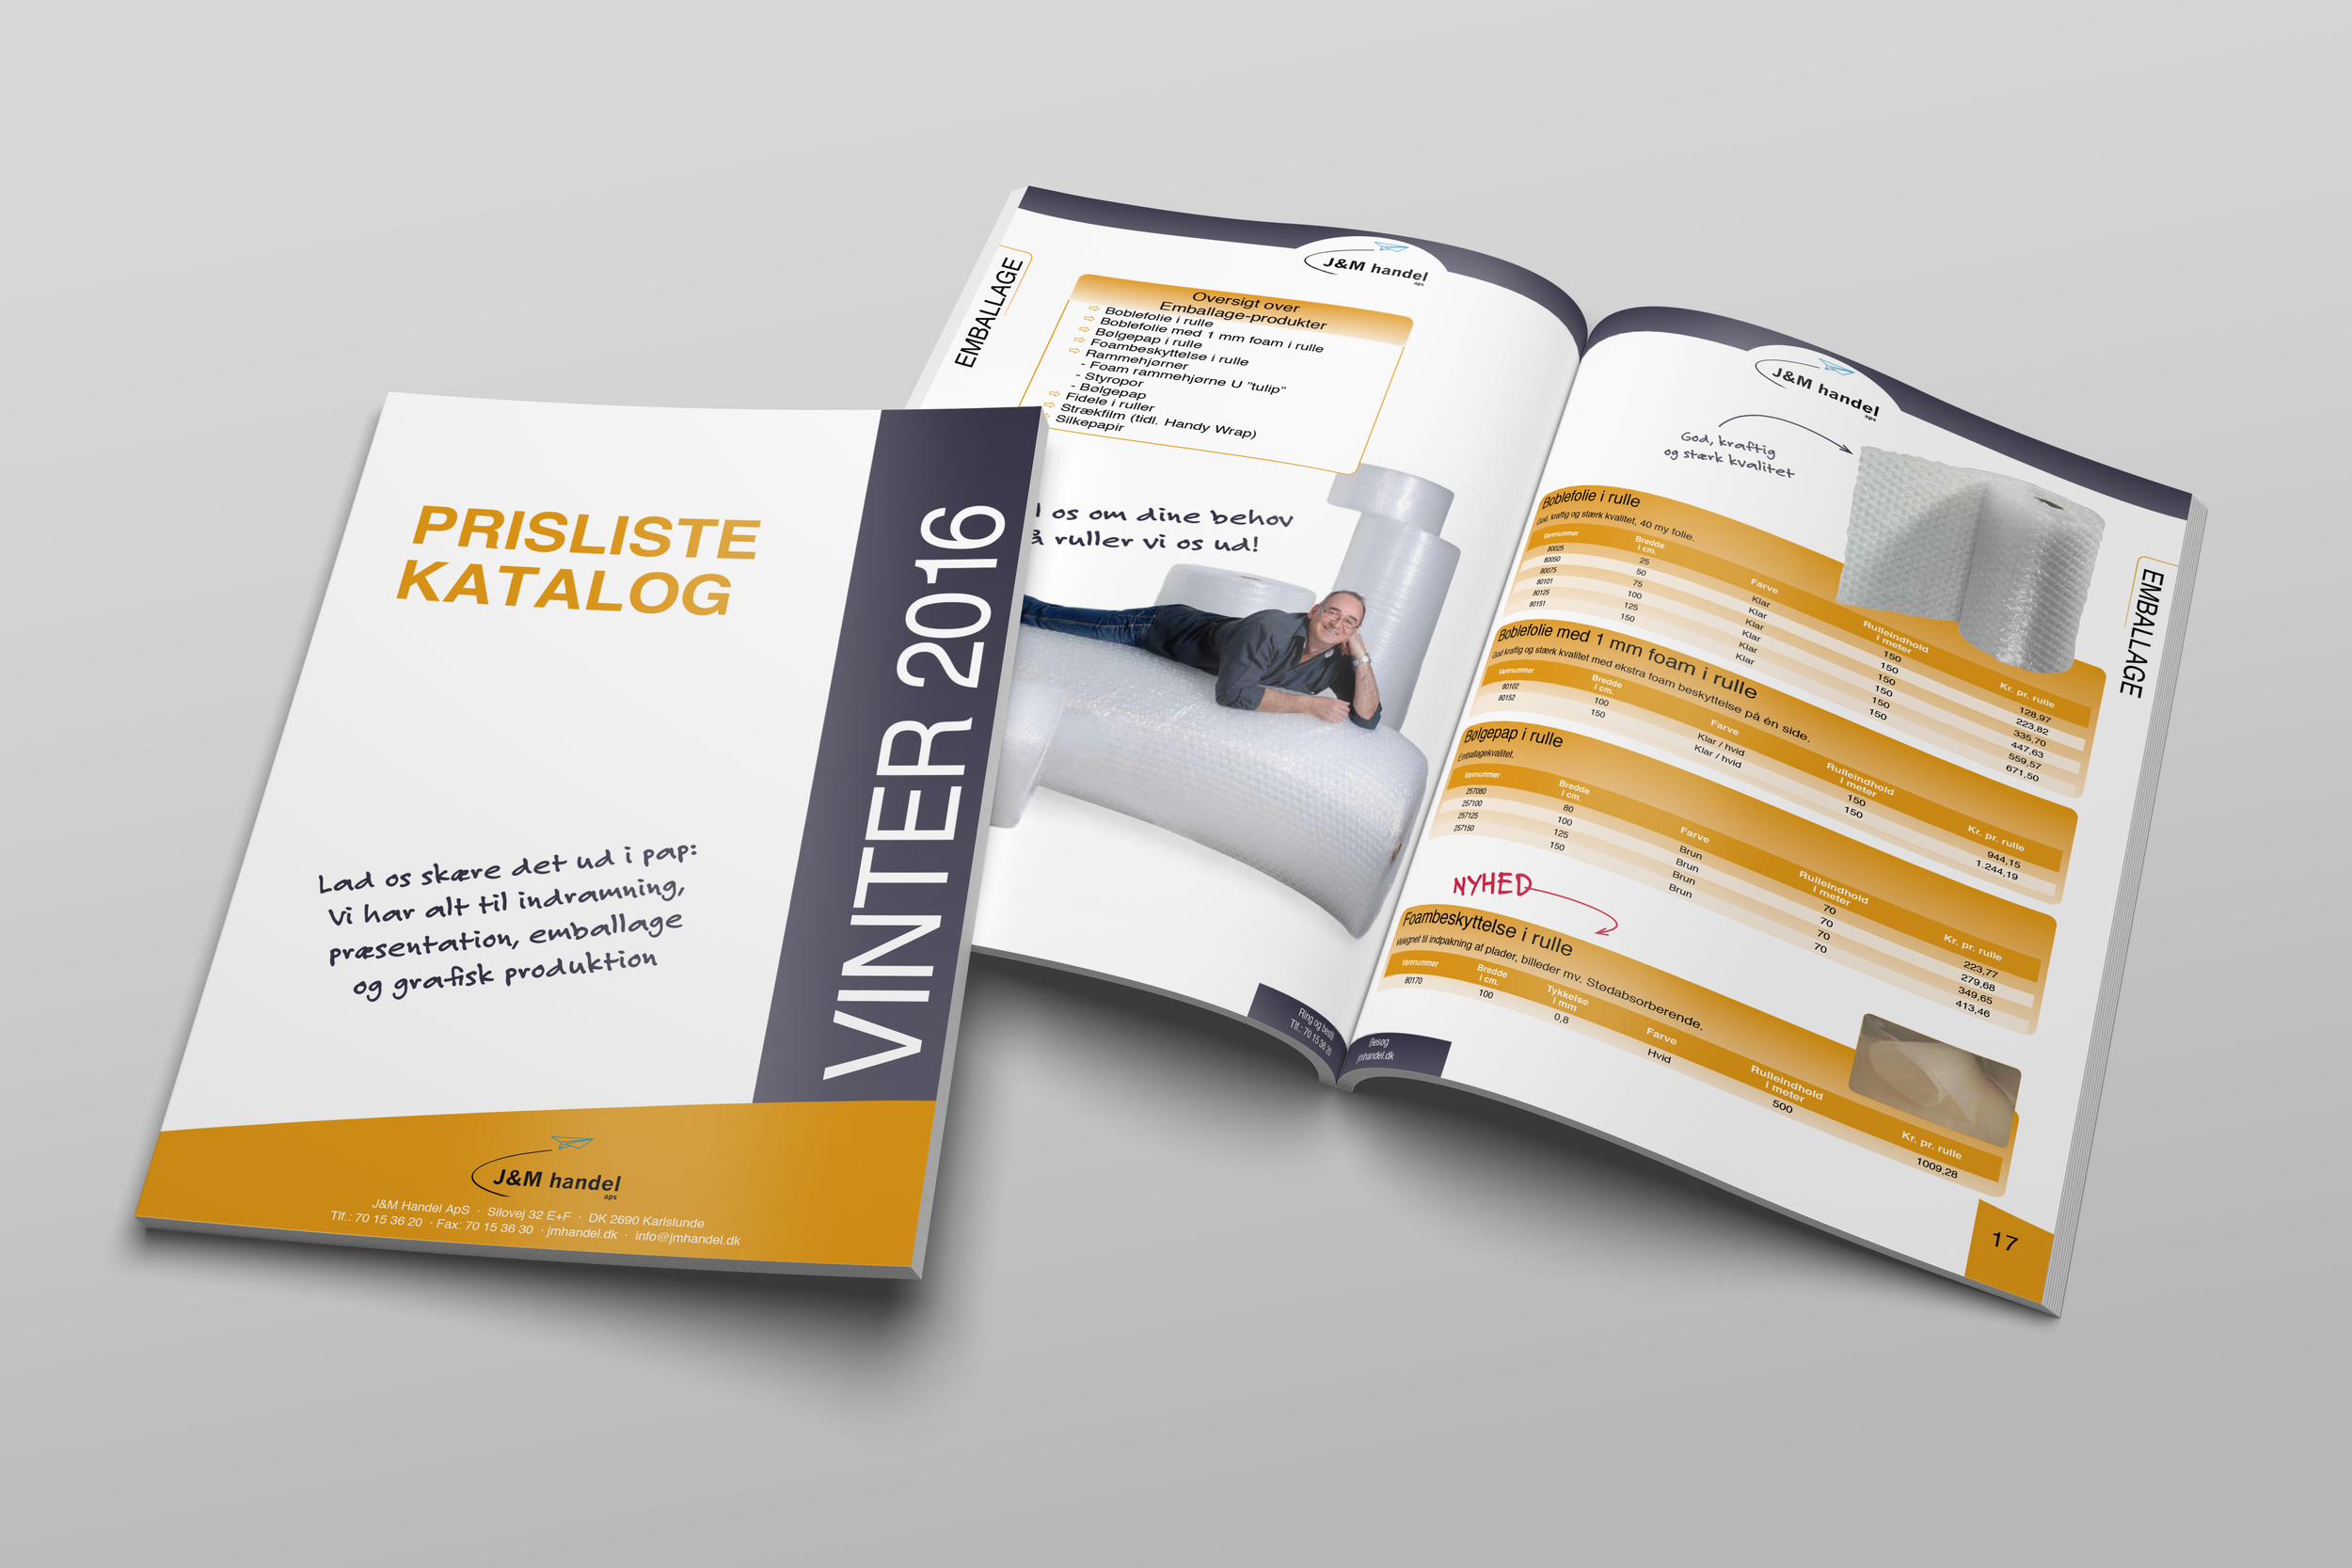 68-siders prislistekatalog for J&M HANDEL